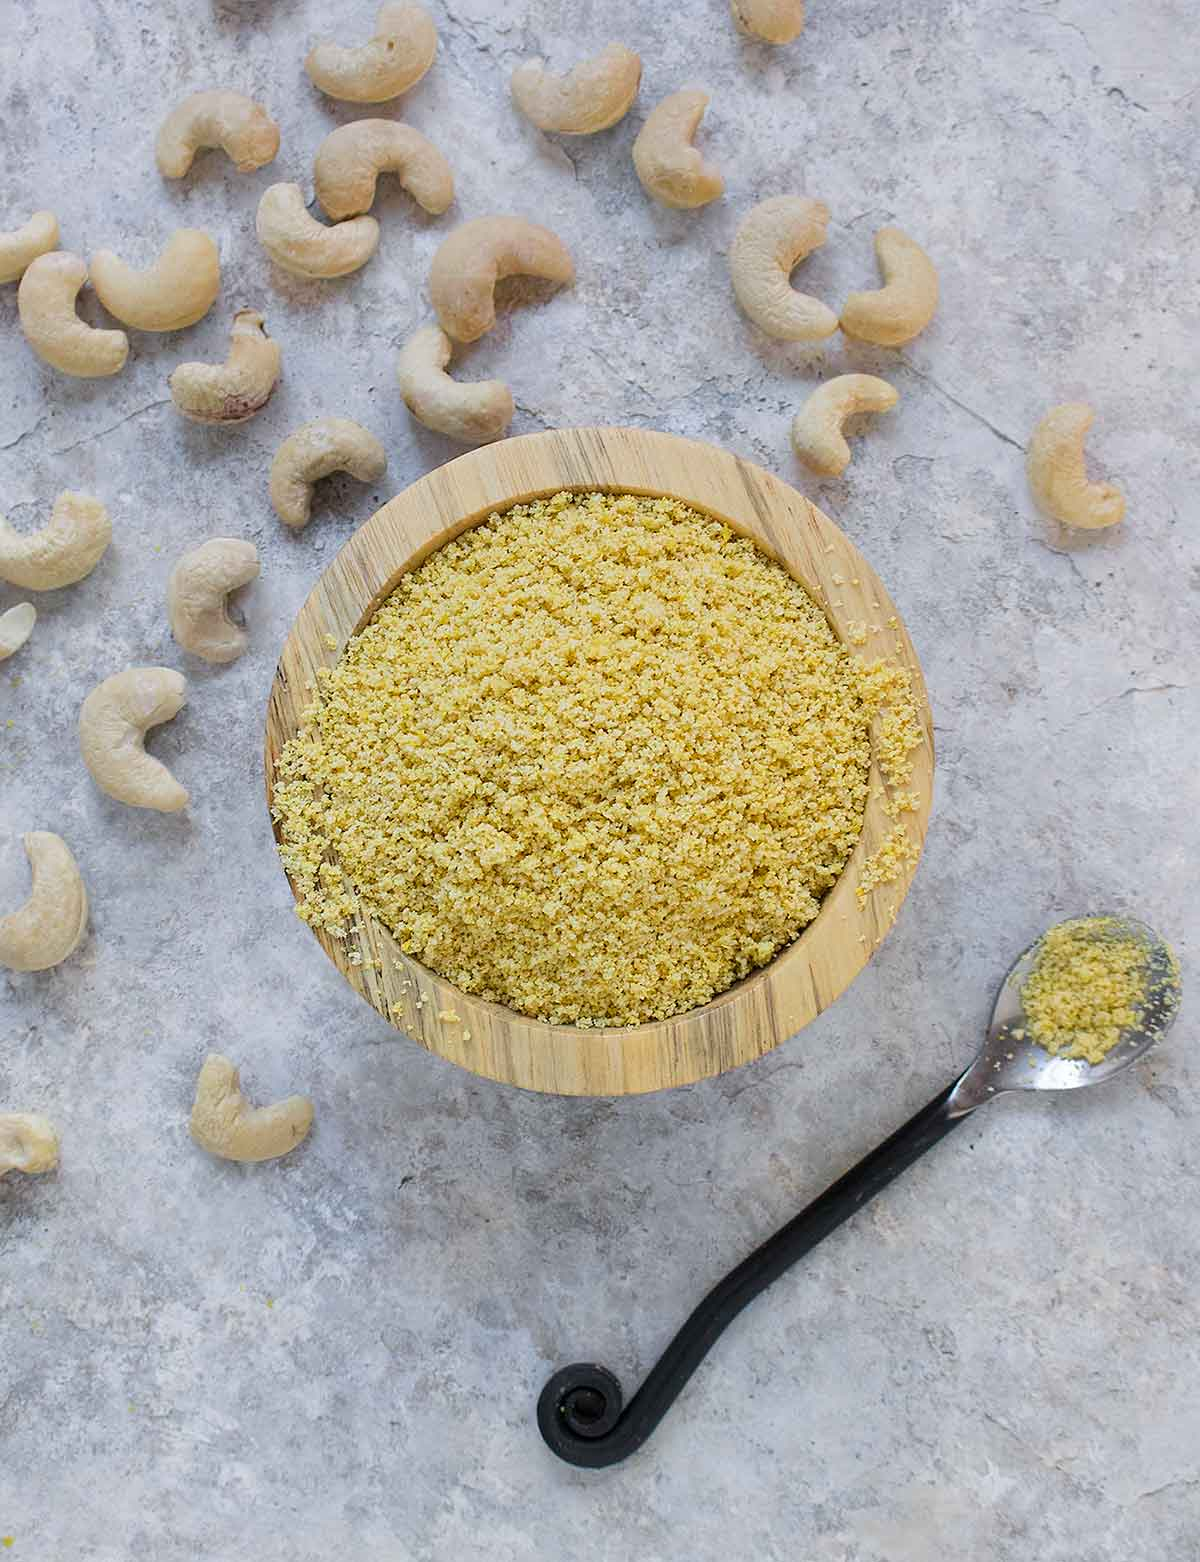 Vegan parm seasoning in a bowl with a spoon.